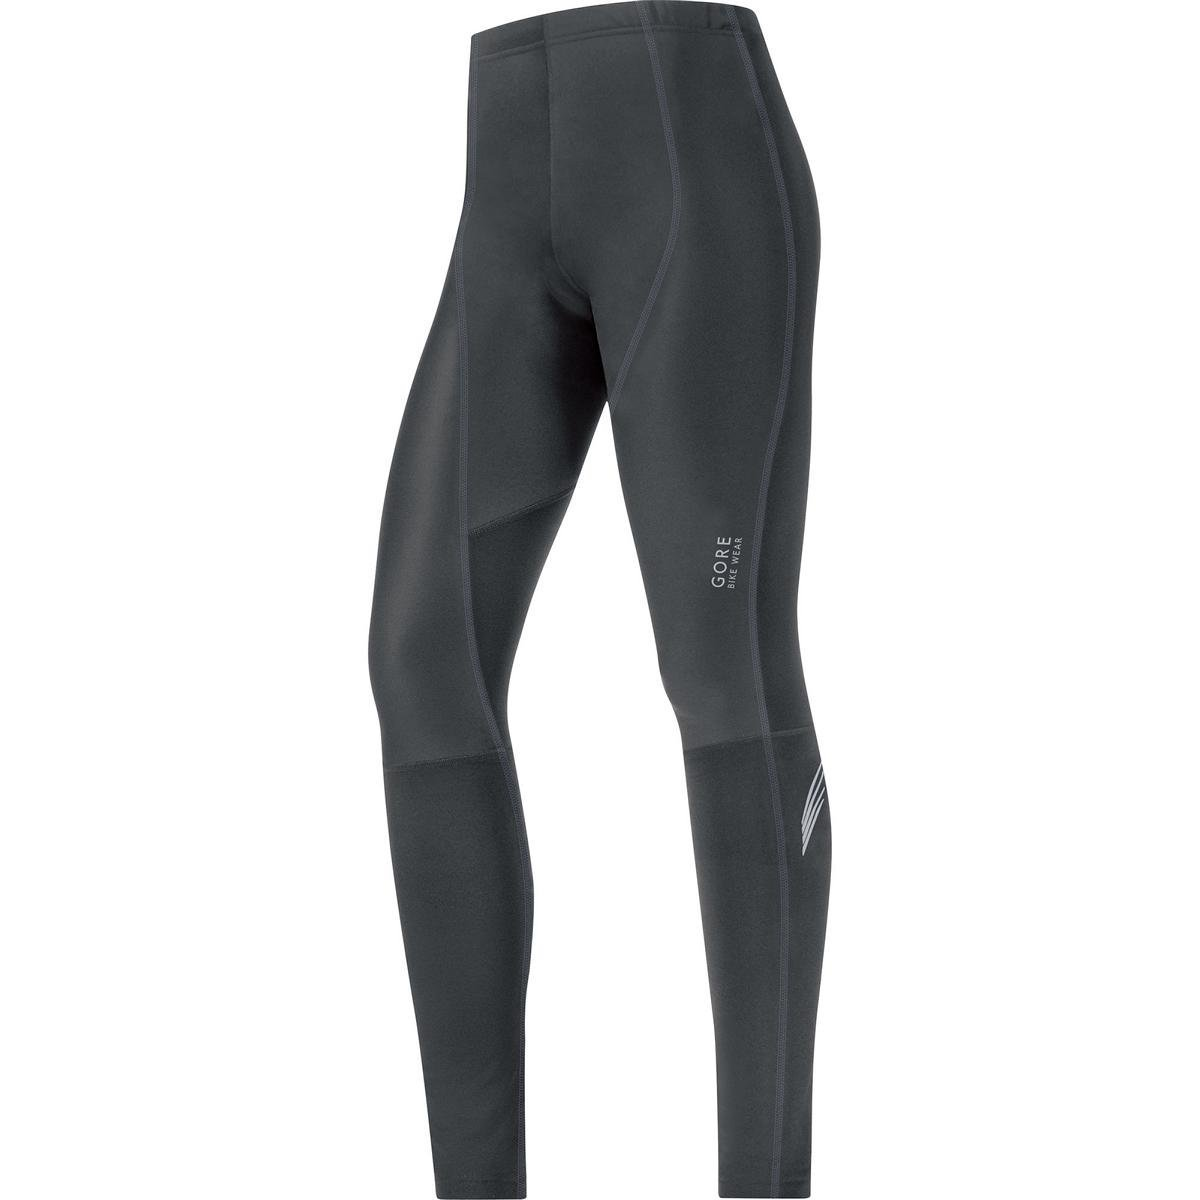 Gore Bike Wear Women's Long Warm Soft Shell Cycling Tights, Gore Windstopper, LADY WS SO Tights LADY WS SO Tights